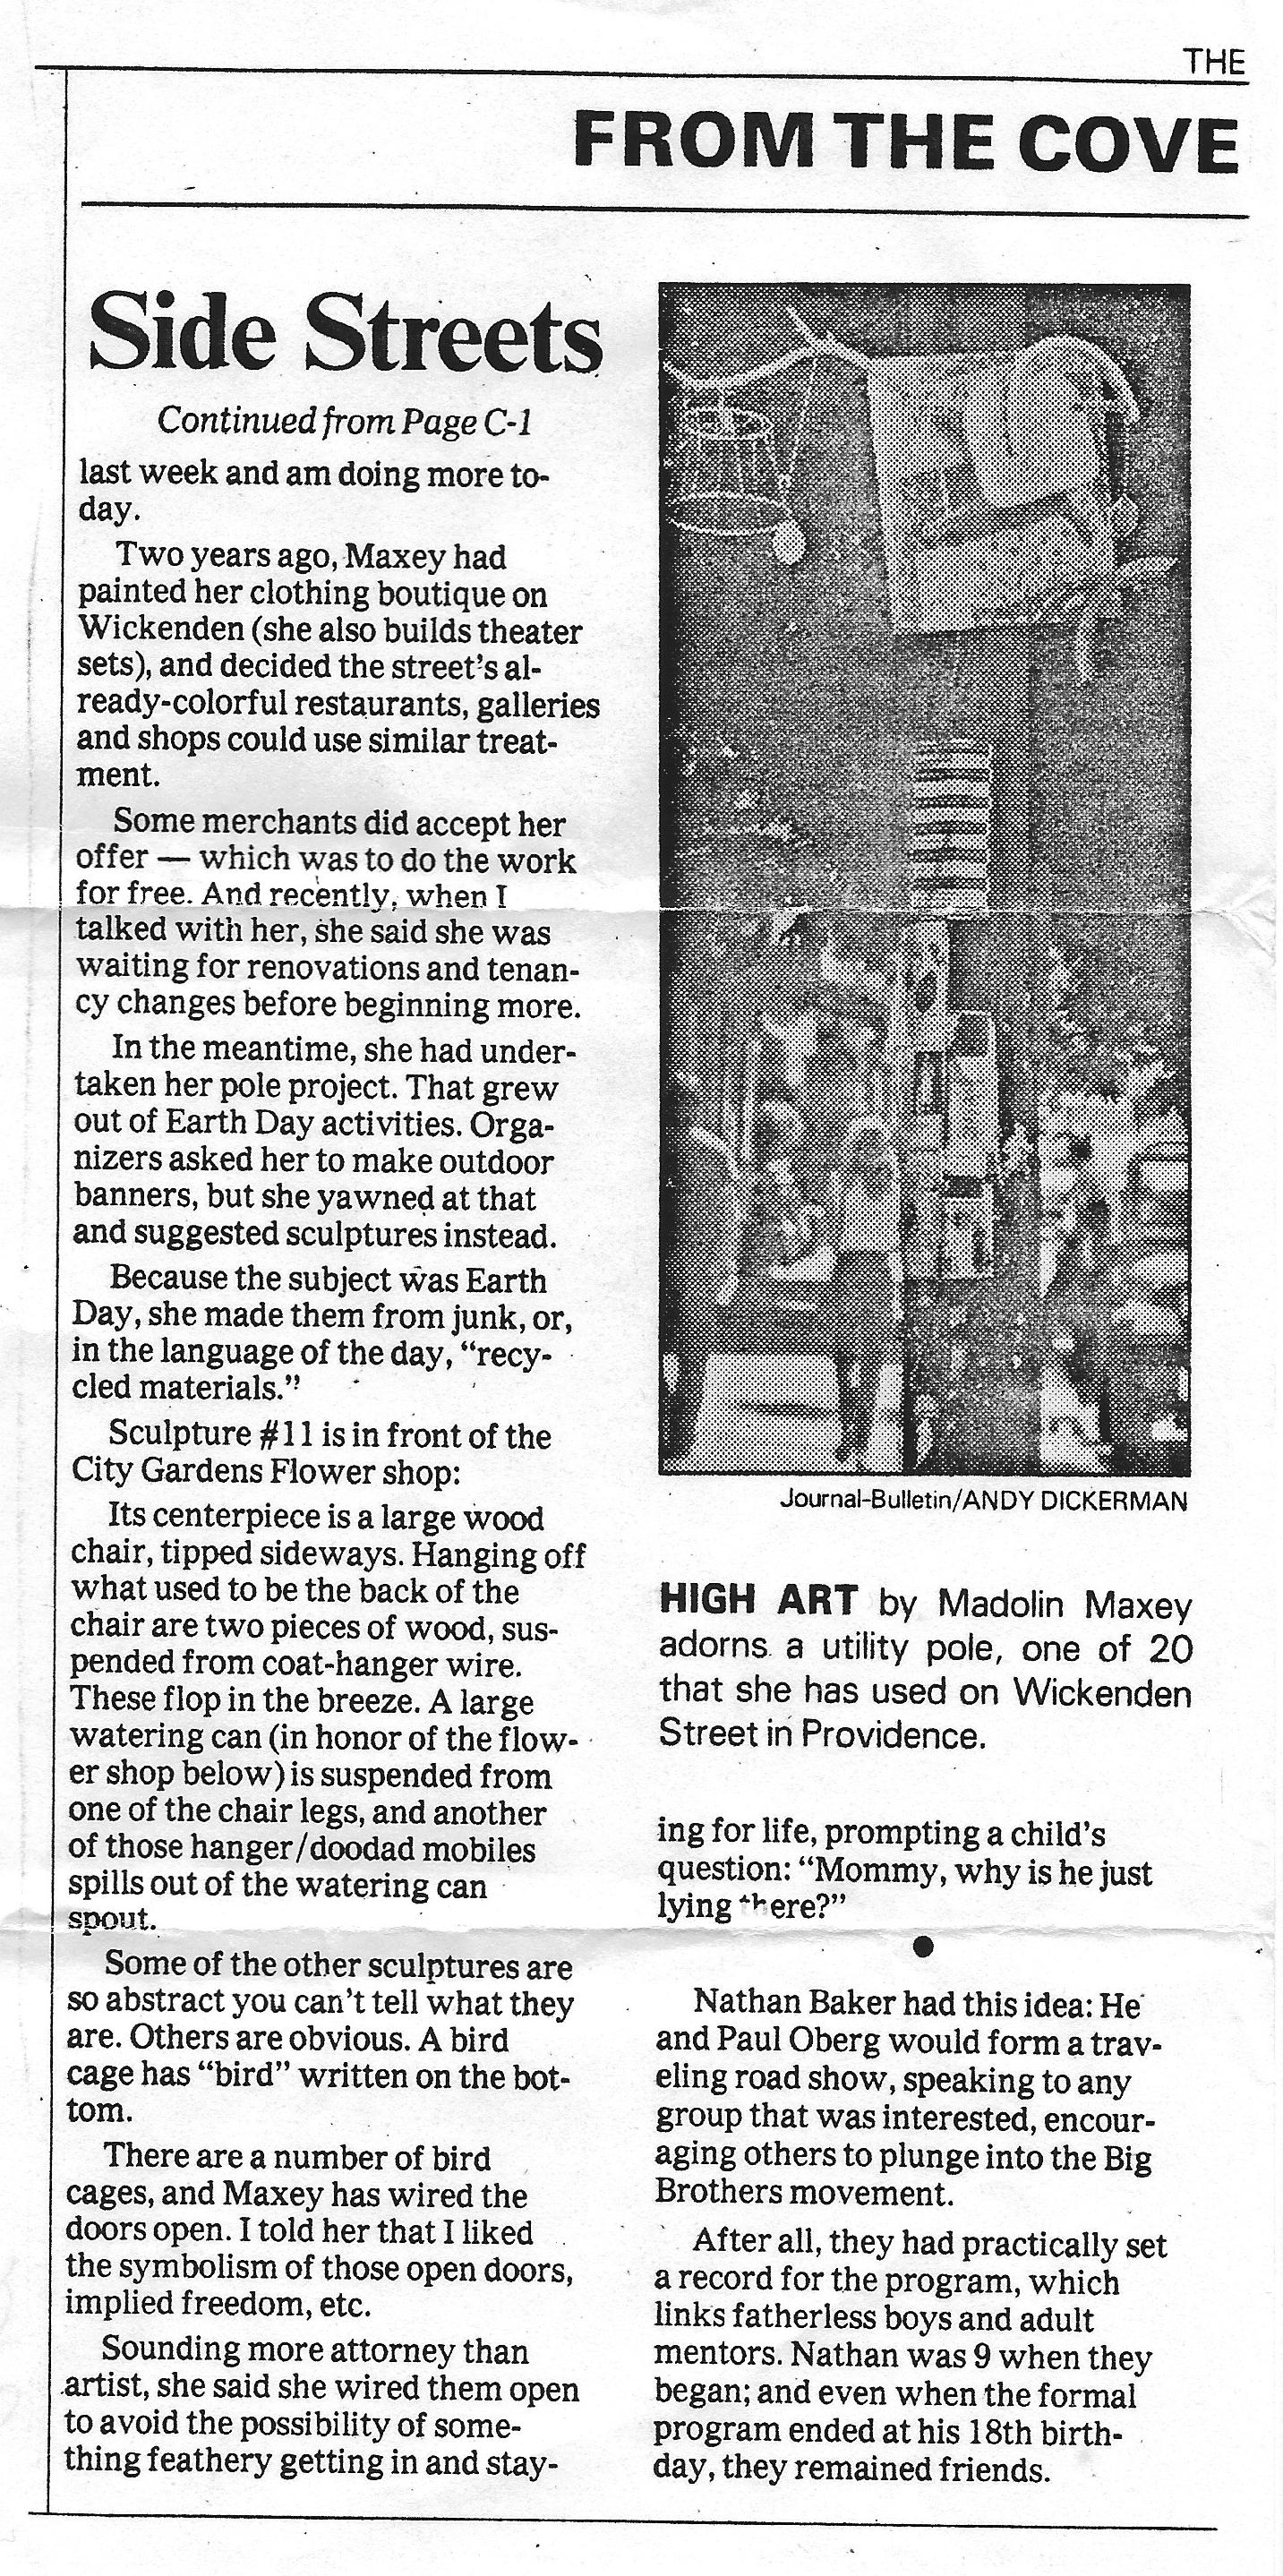 Providence Journal Bulletin June 13, 1993